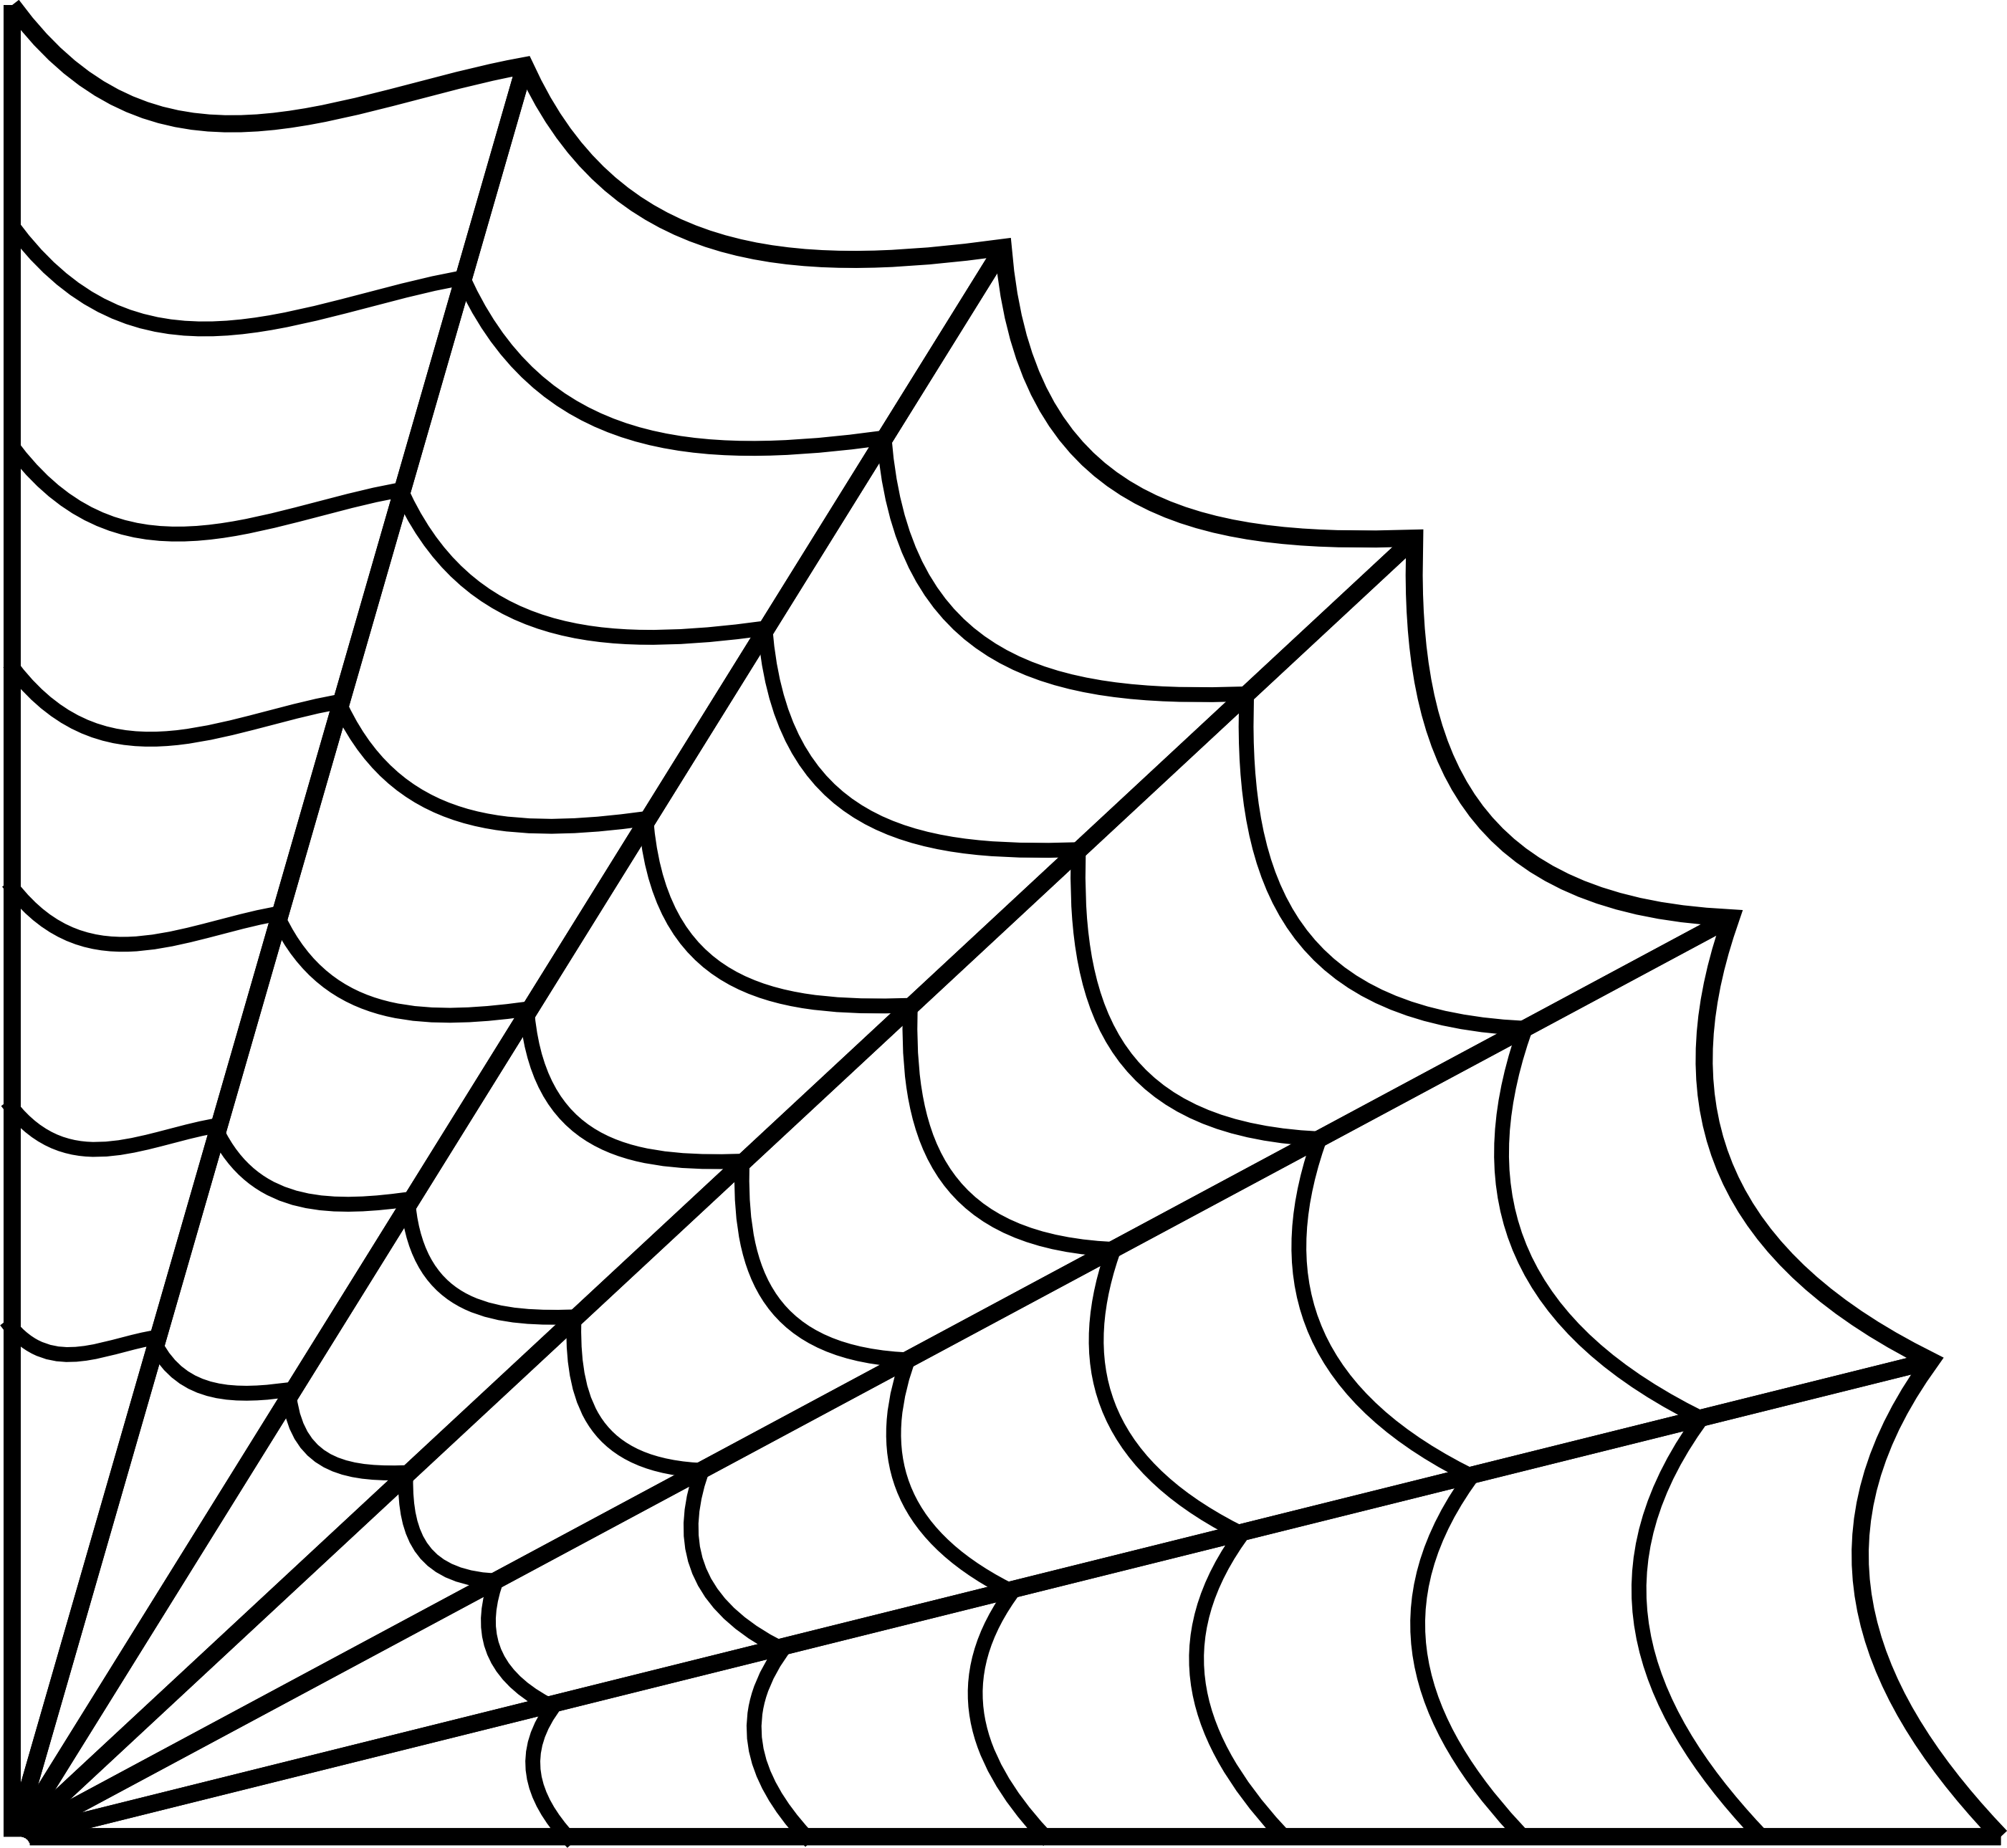 Spider web corner png. Image result for line